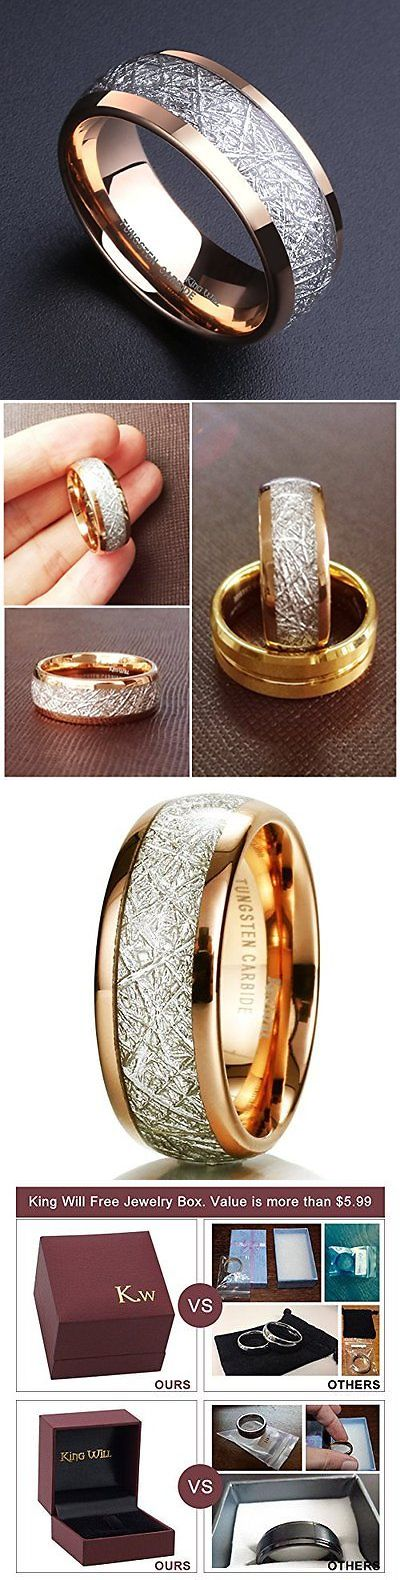 Rings 137856: Mens 8Mm Domed 14K Gold Tungsten Carbide Ring Meteorite Inlay Wedding Band New BUY IT NOW ONLY: $113.72